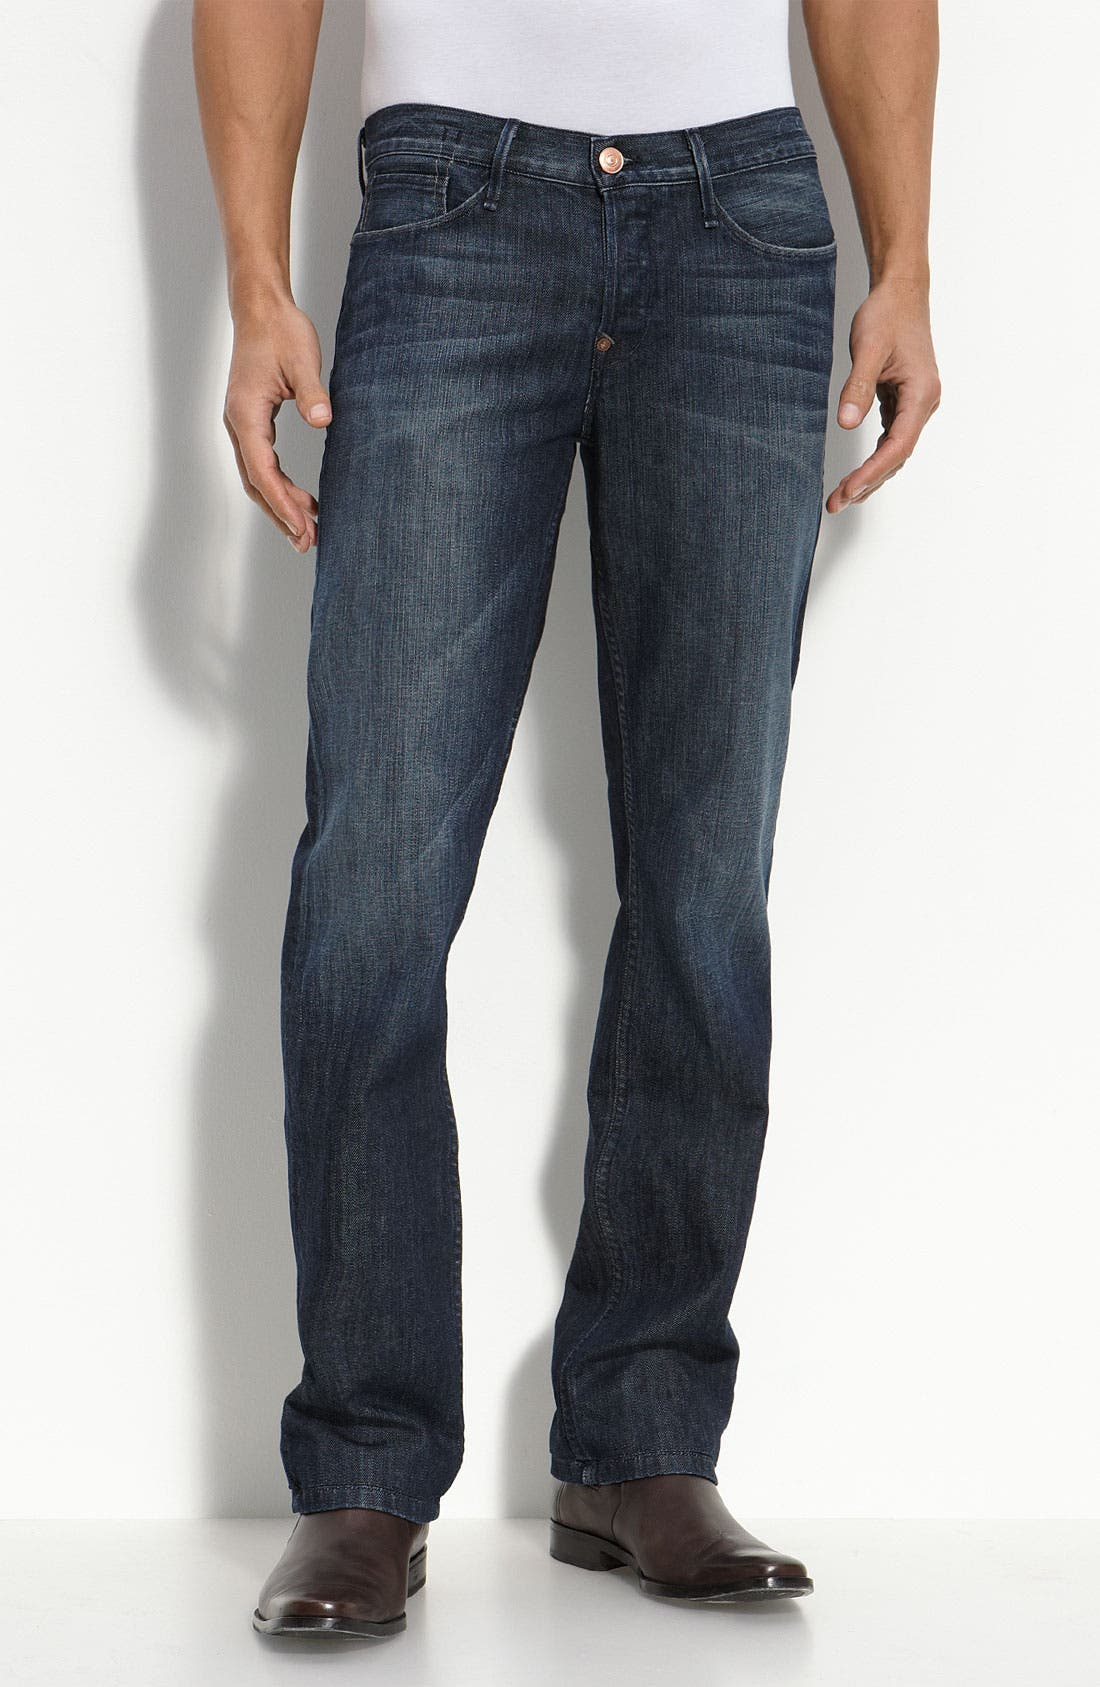 Alternate Image 1 Selected - Earnest Sewn 'Fulton' Straight Leg Jeans (Parker)